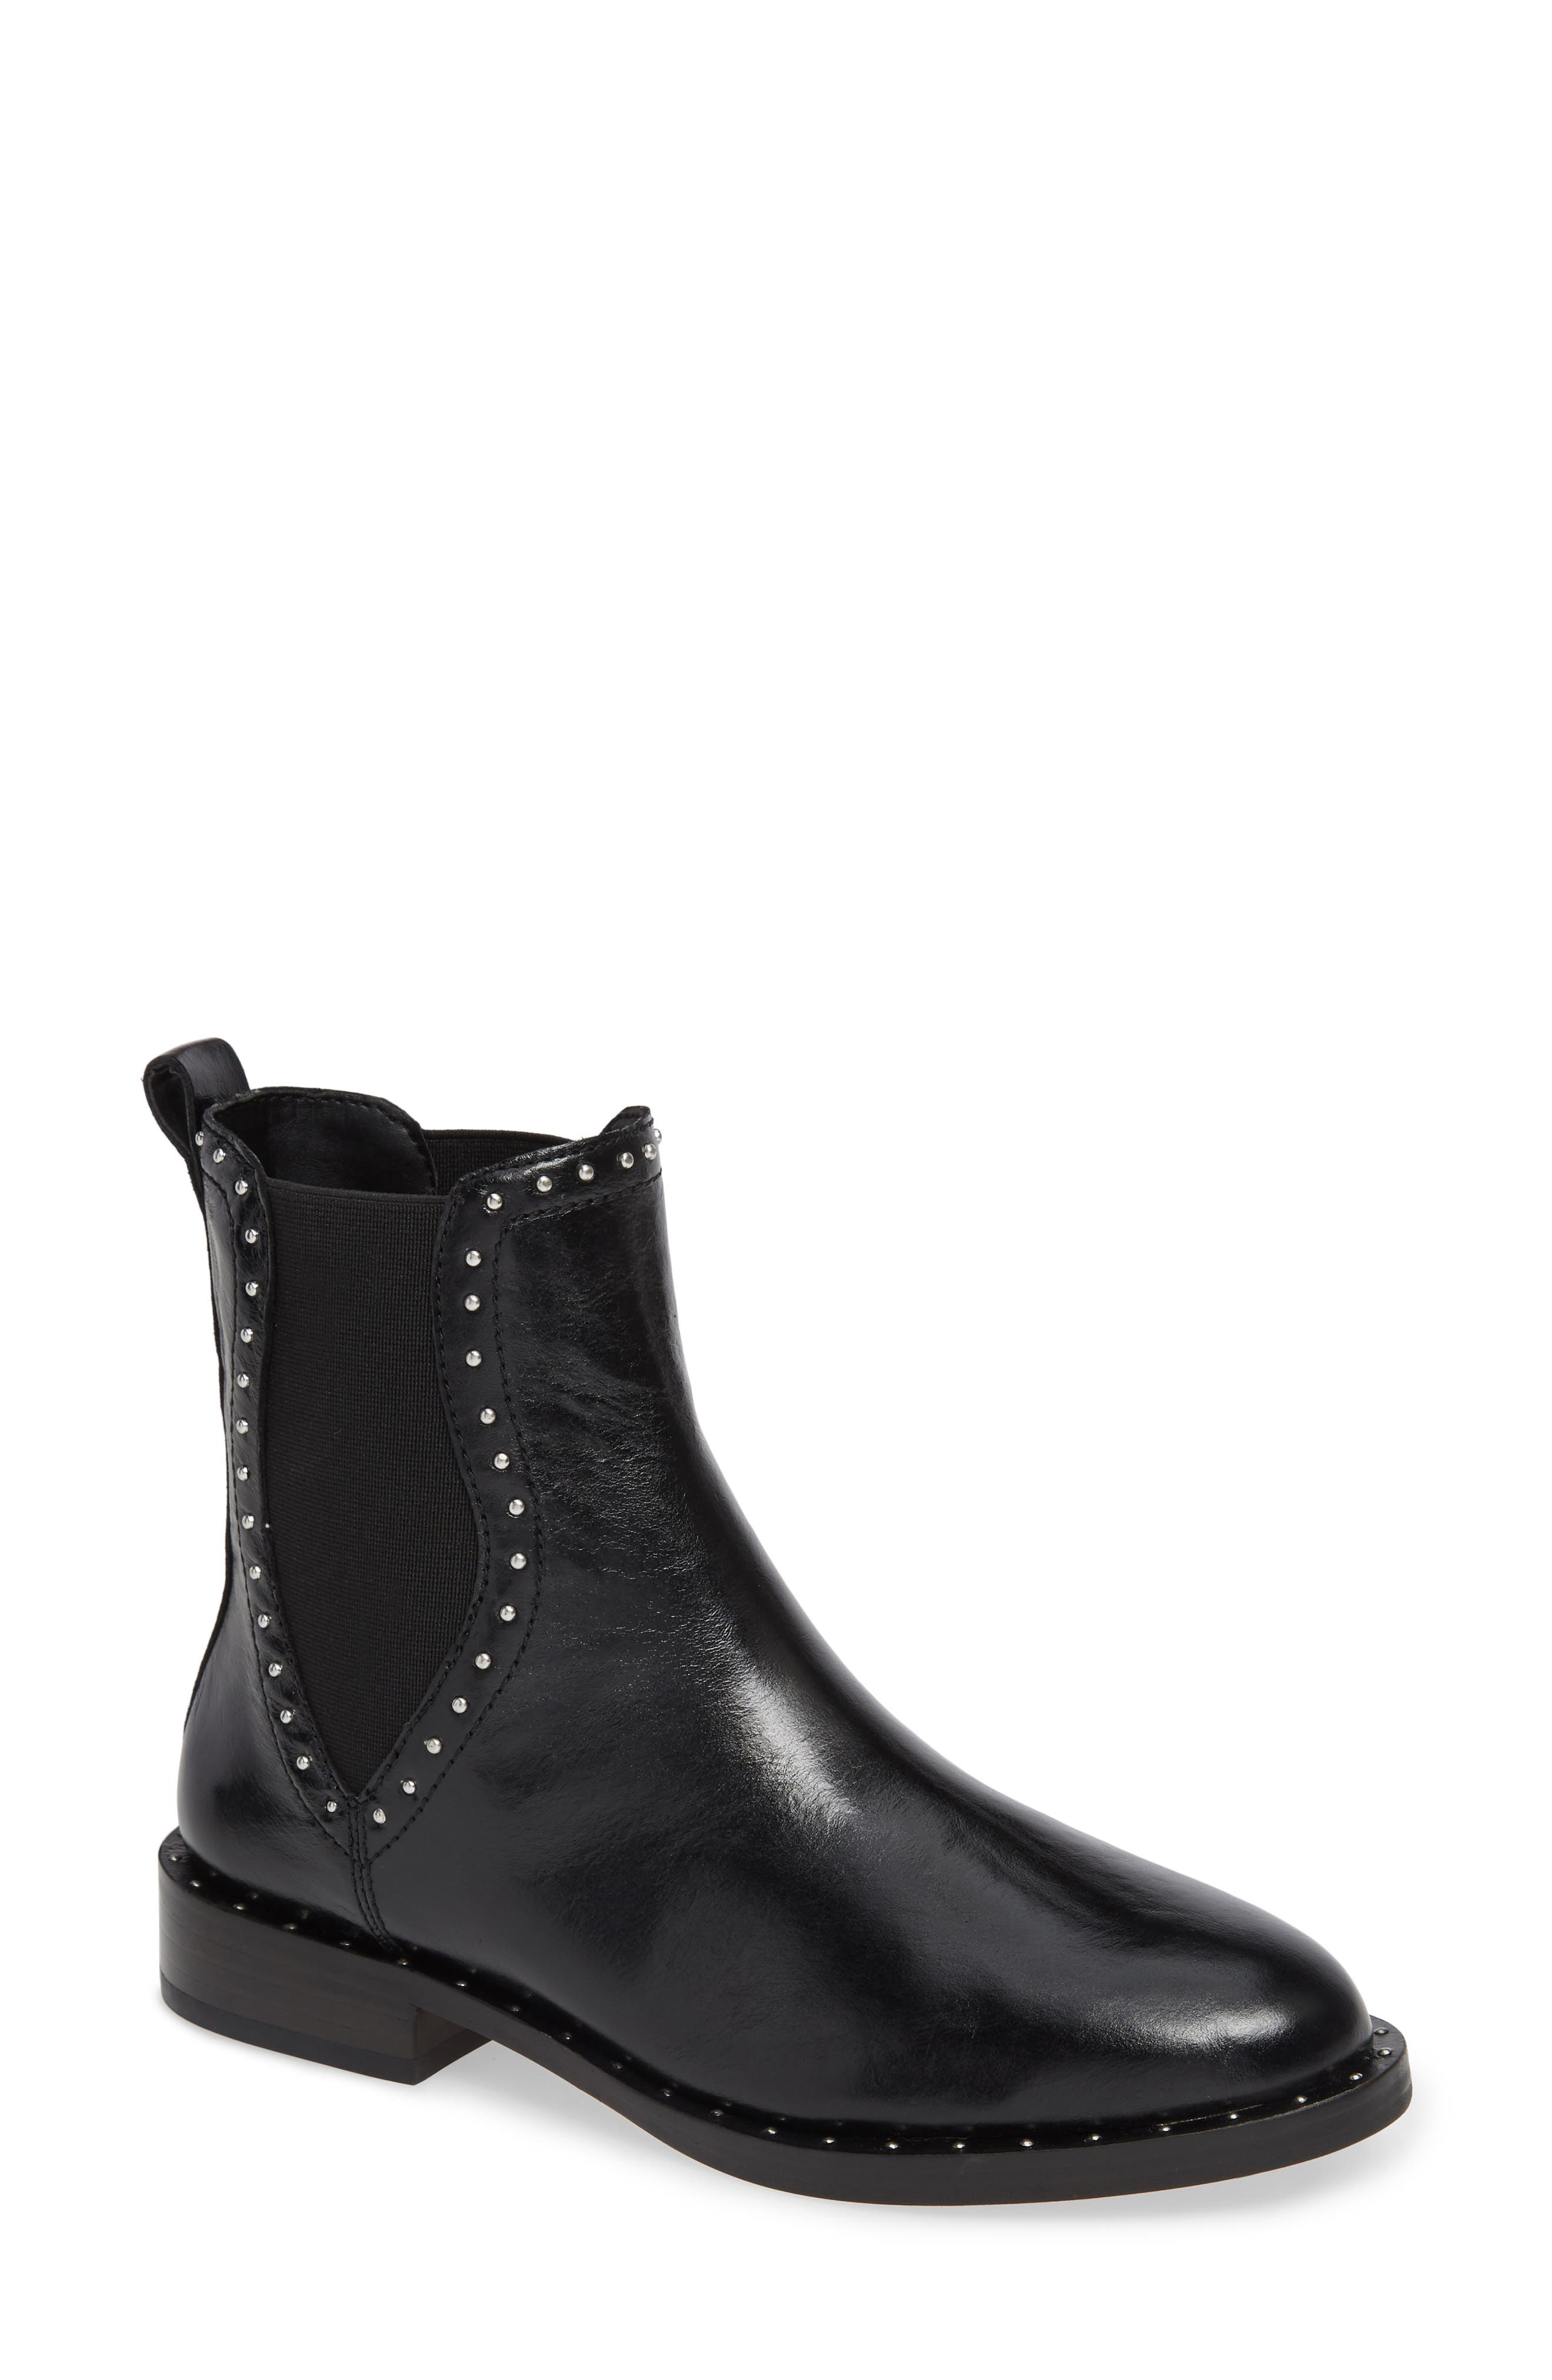 REBECCA MINKOFF, Sabeen Chelsea Bootie, Main thumbnail 1, color, BLACK LEATHER